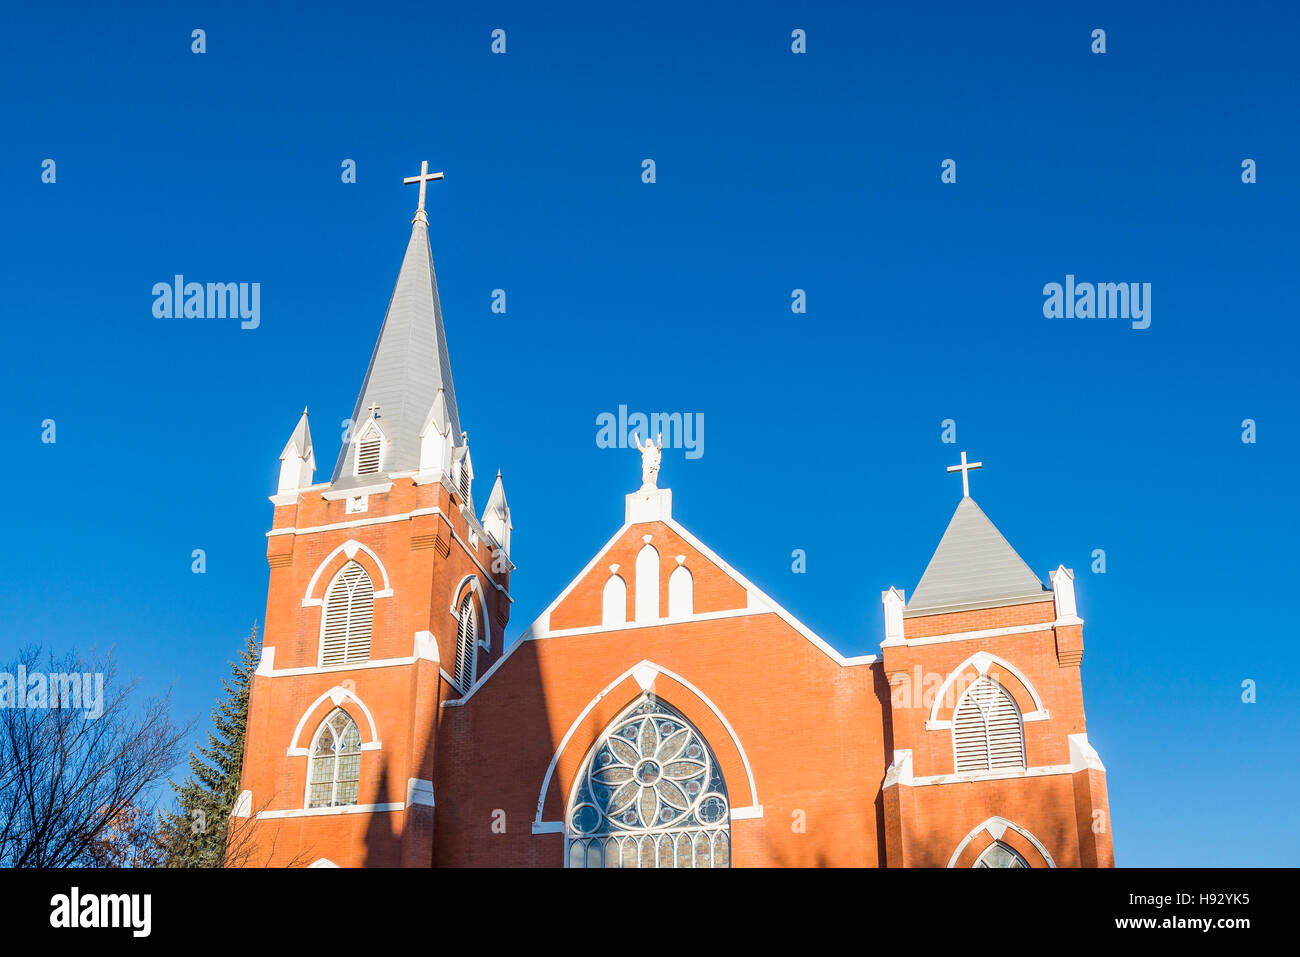 Church of the First Peoples, Edmonton, Alberta, Canada. - Stock Image